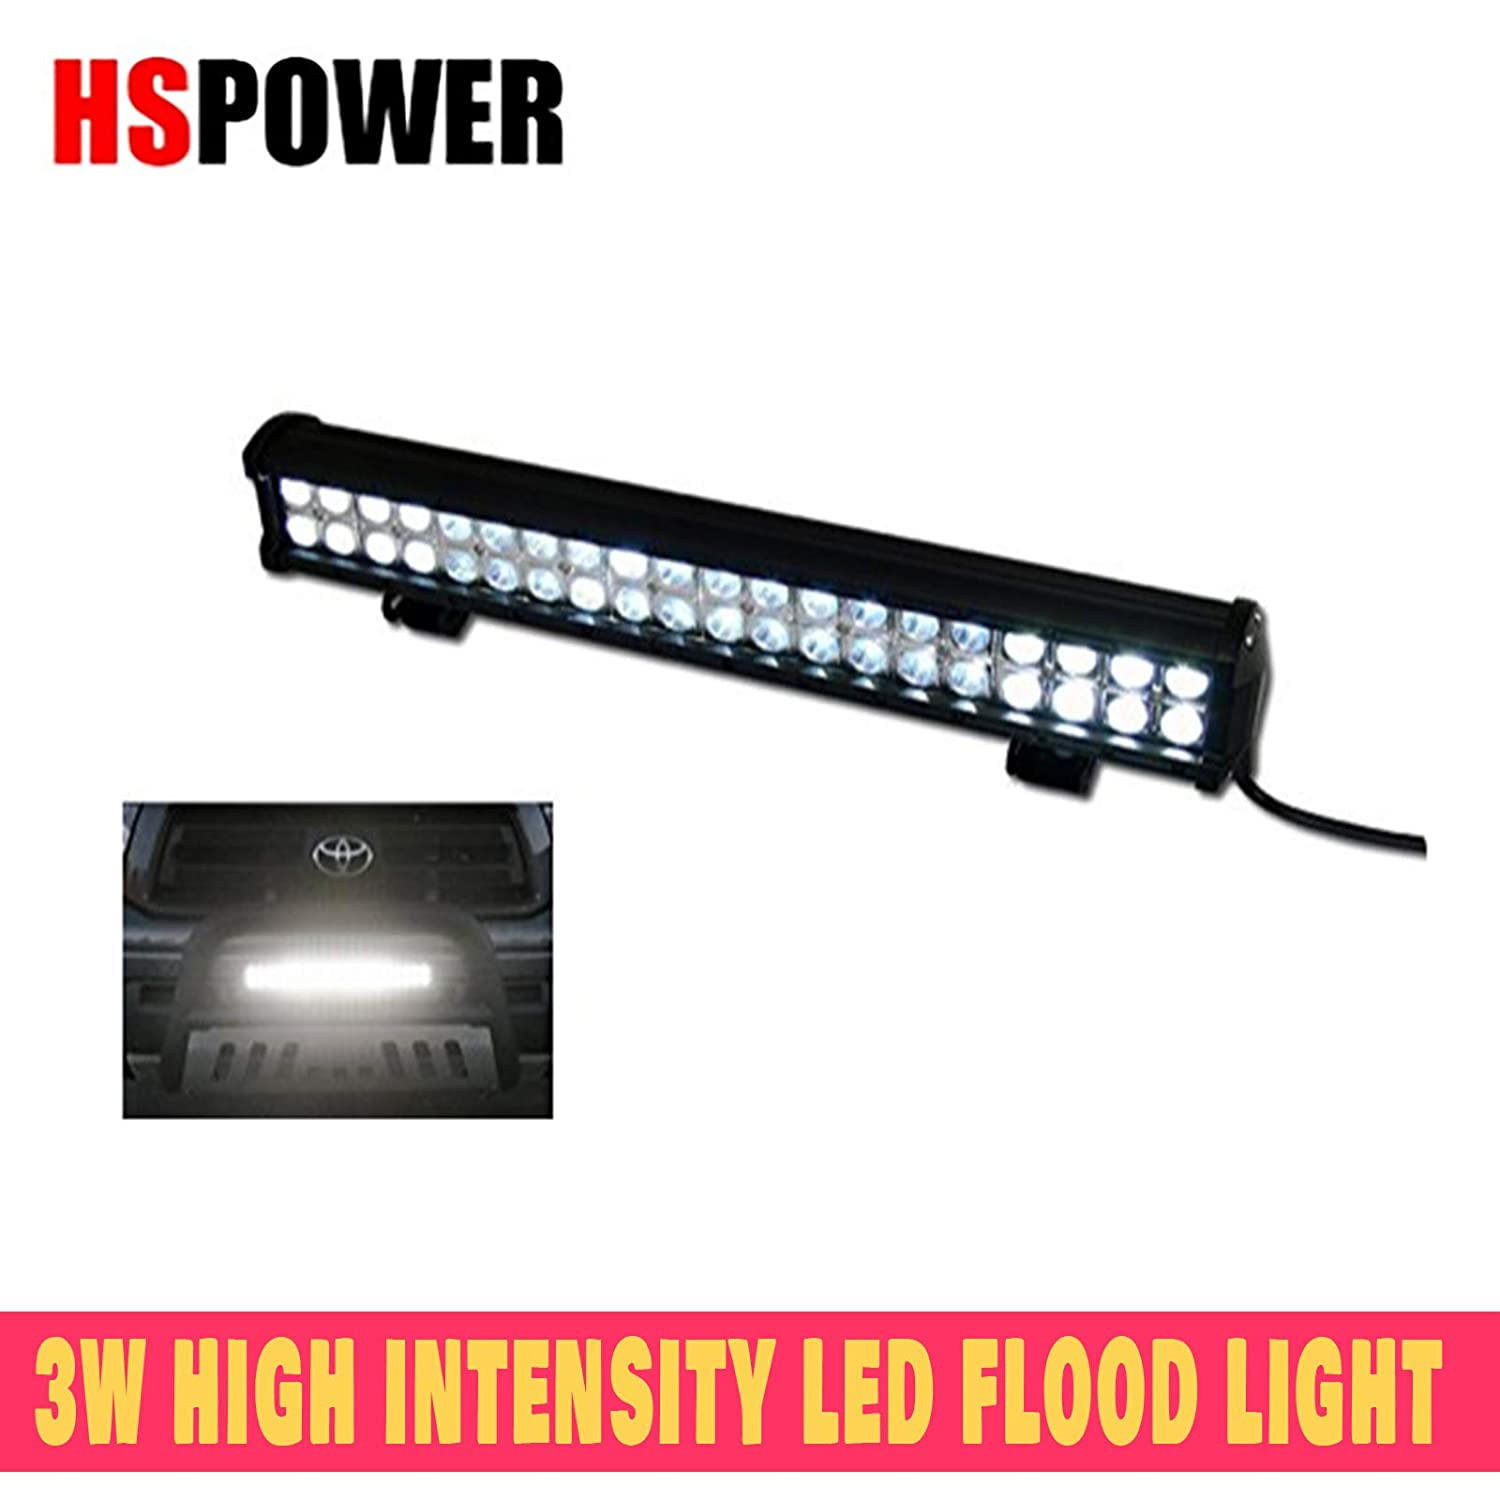 HS Power Offroad Flood Light Bar 120W Cree LED Spot Bull Guard Roof Bumper Mount GA1 1PC